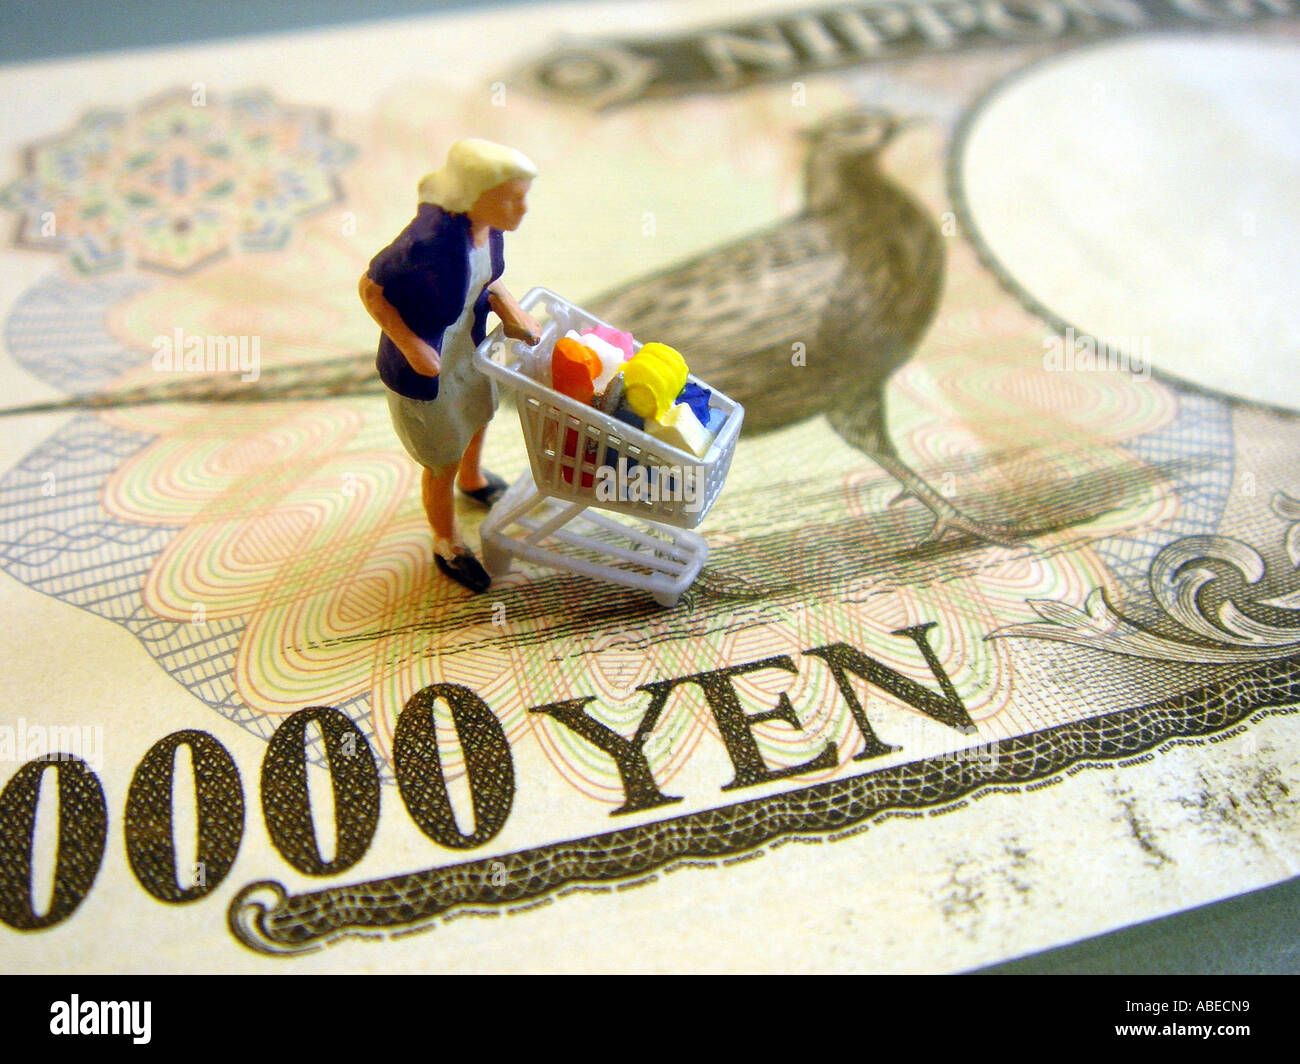 Symbol Purchasing Power Of The Japanese Yen Stock Photo 7353176 Alamy